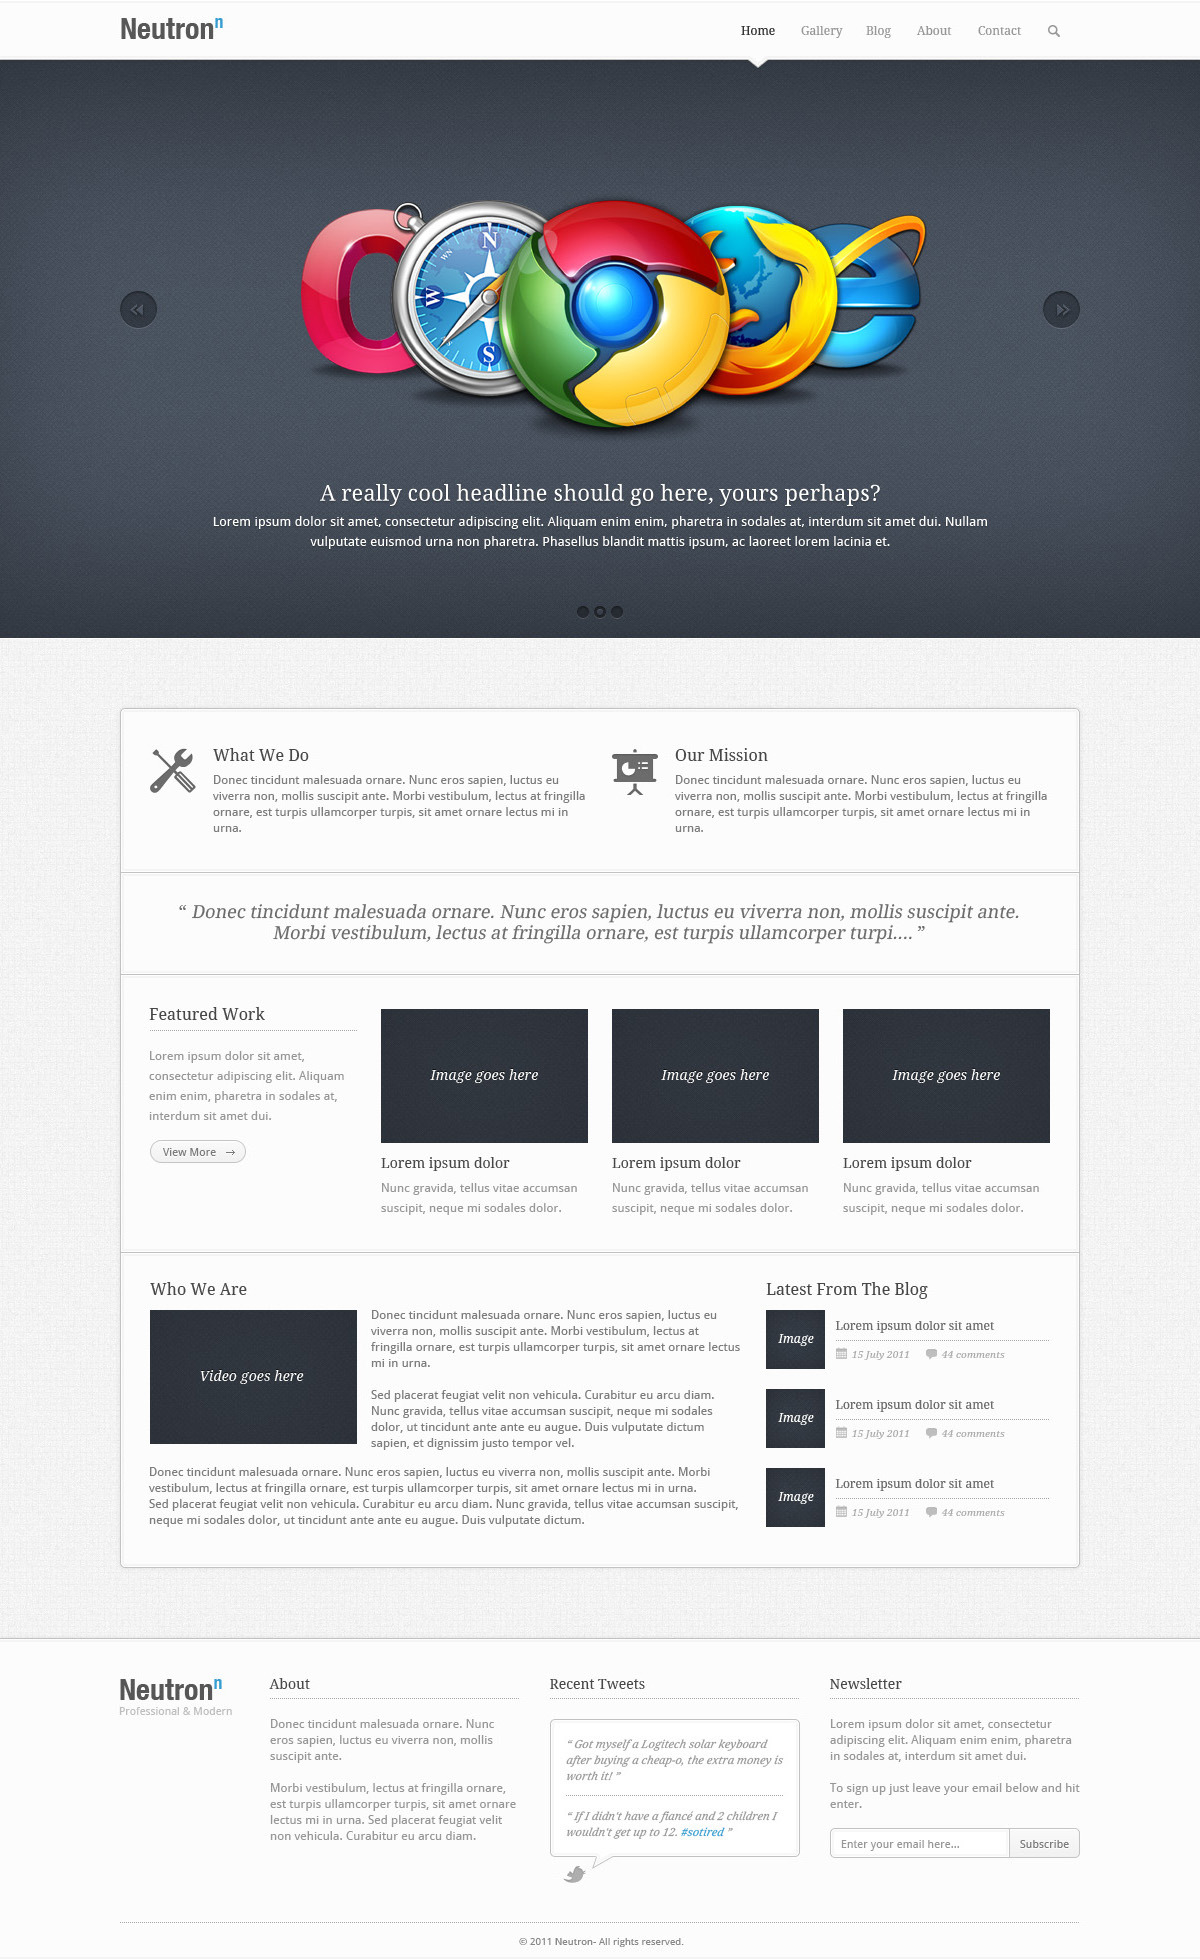 Neutron - PSD Theme - The Homepage section of the Neutron theme, containing sections for: A Full Width Carousel, Mission Statements, Featured Work, Who You Are, Latest Blog Posts, plus the Header and Footer sections.